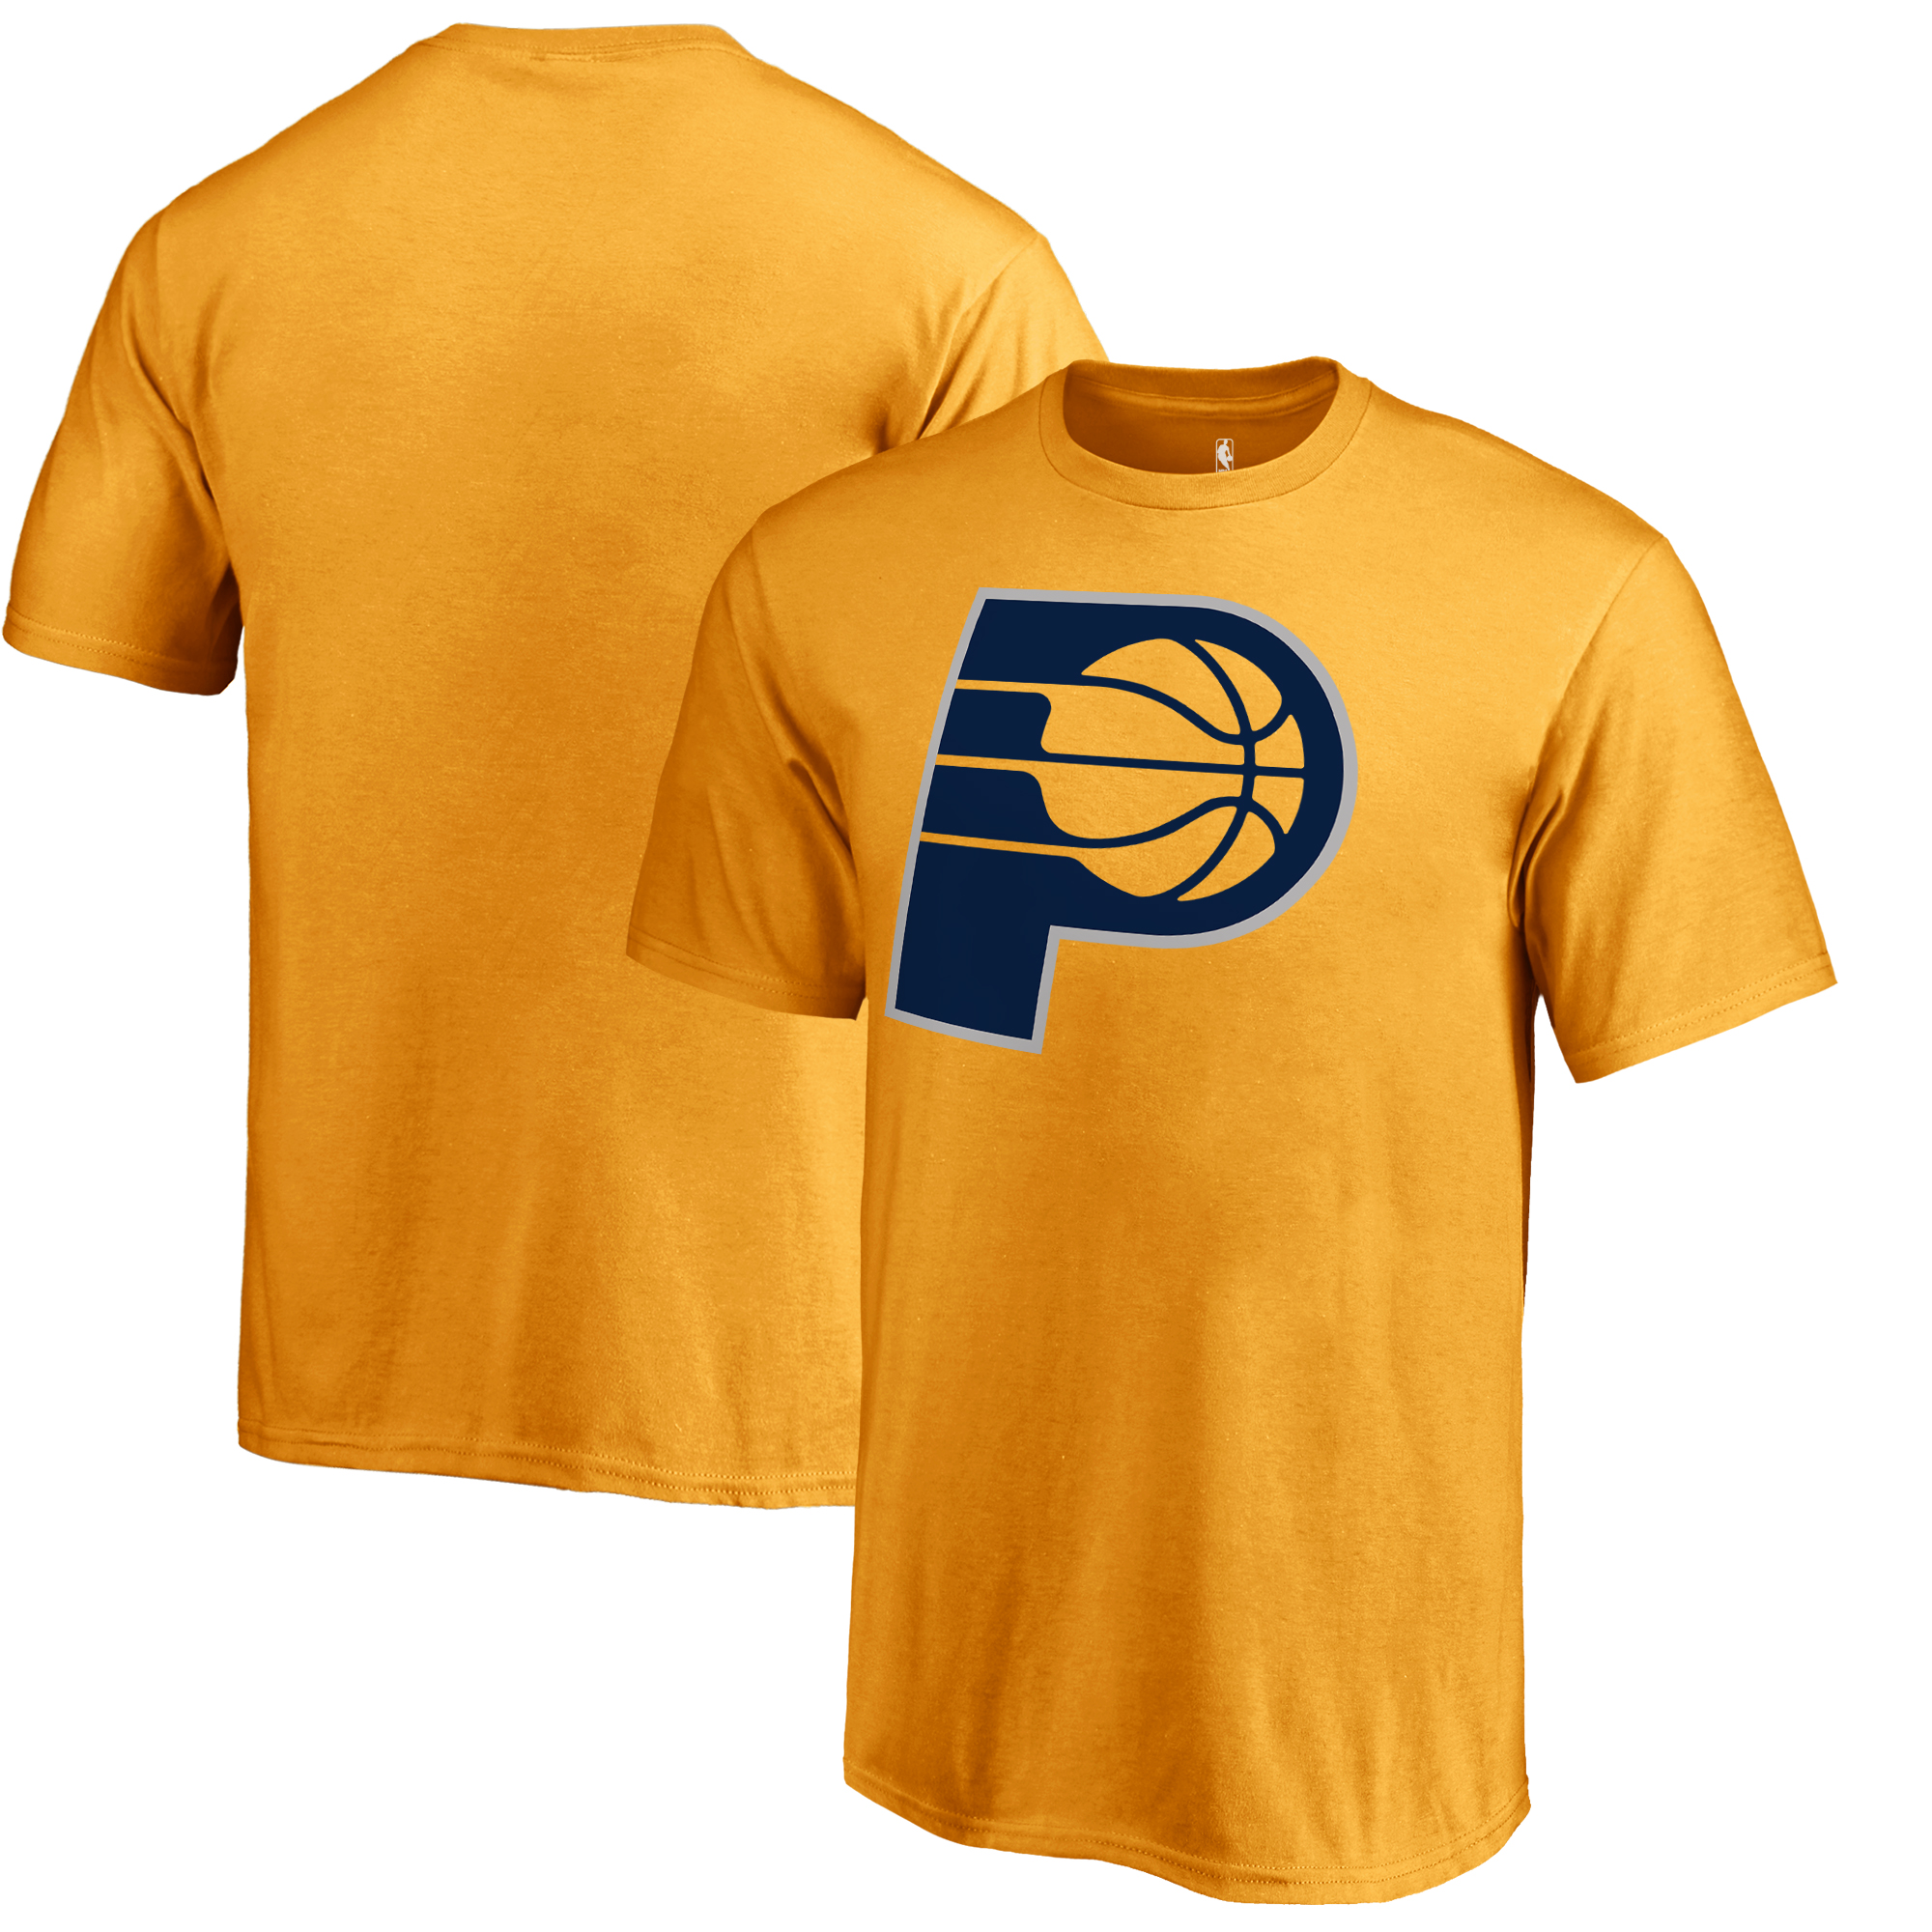 Indiana Pacers Fanatics Branded Youth Primary Logo T-Shirt - Gold